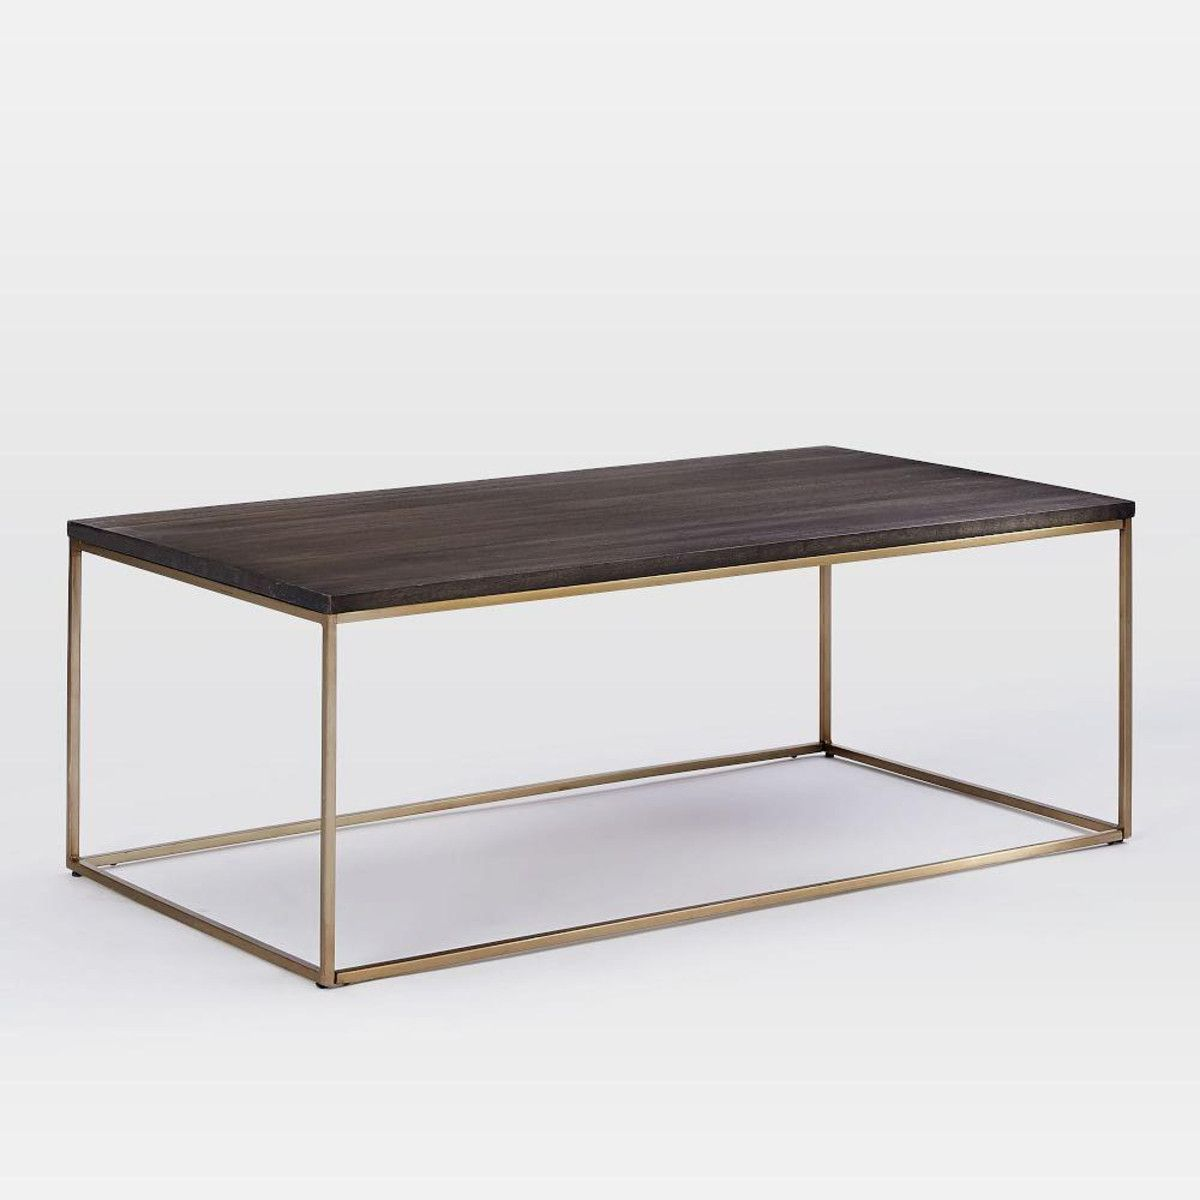 Streamline Coffee Table UmberAntique Brass Aldgate Pinterest - Brushed brass side table